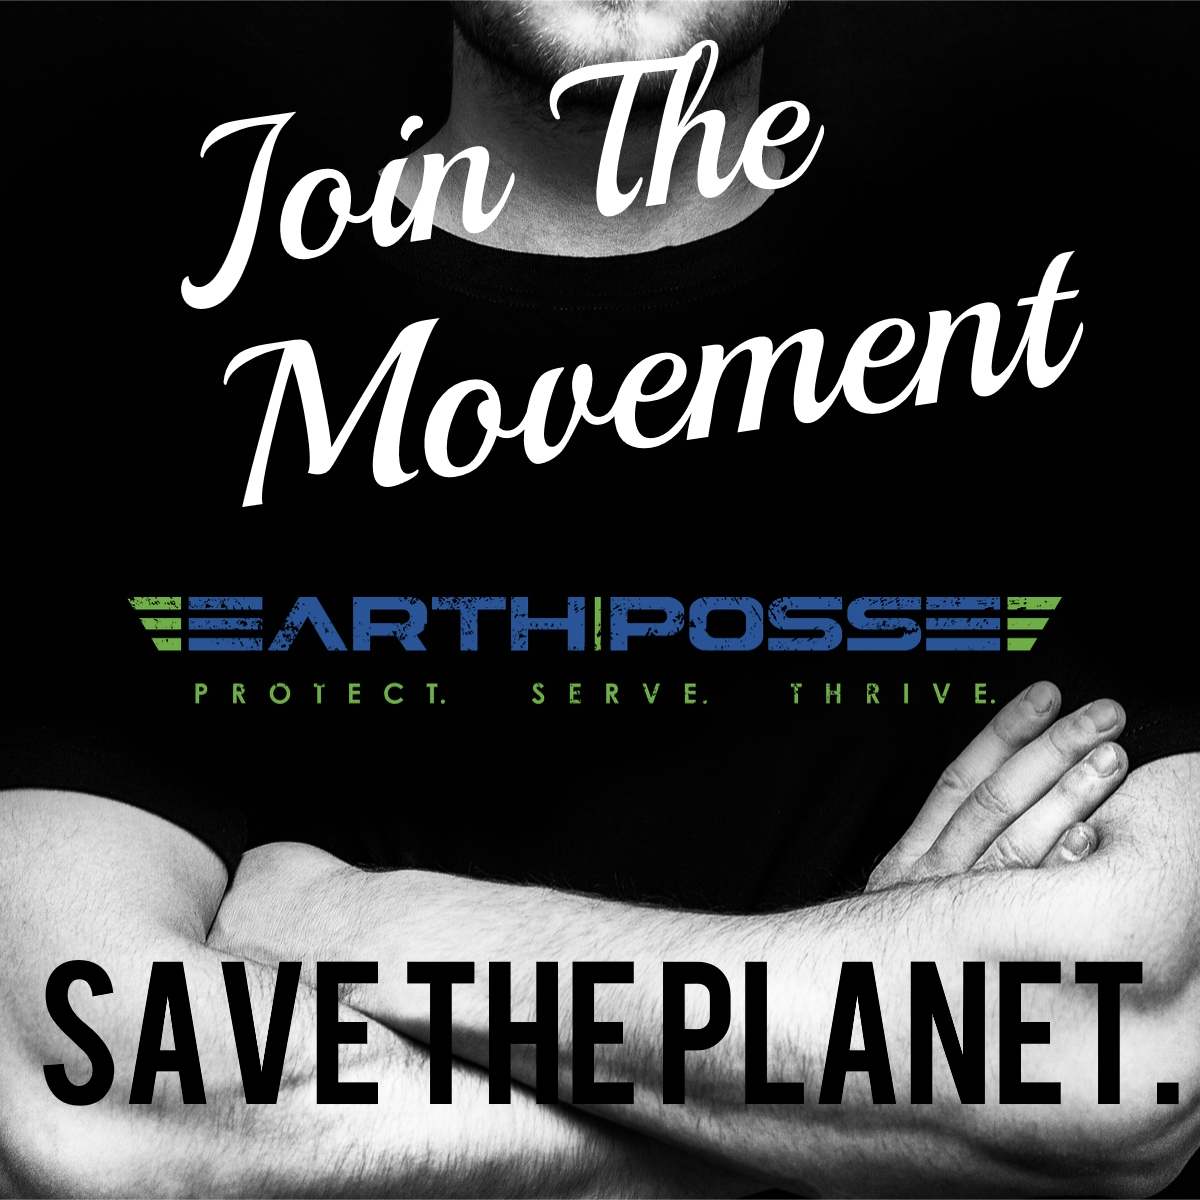 Get the Newsletter. - Articles. Earth News. Inspiration. Action.